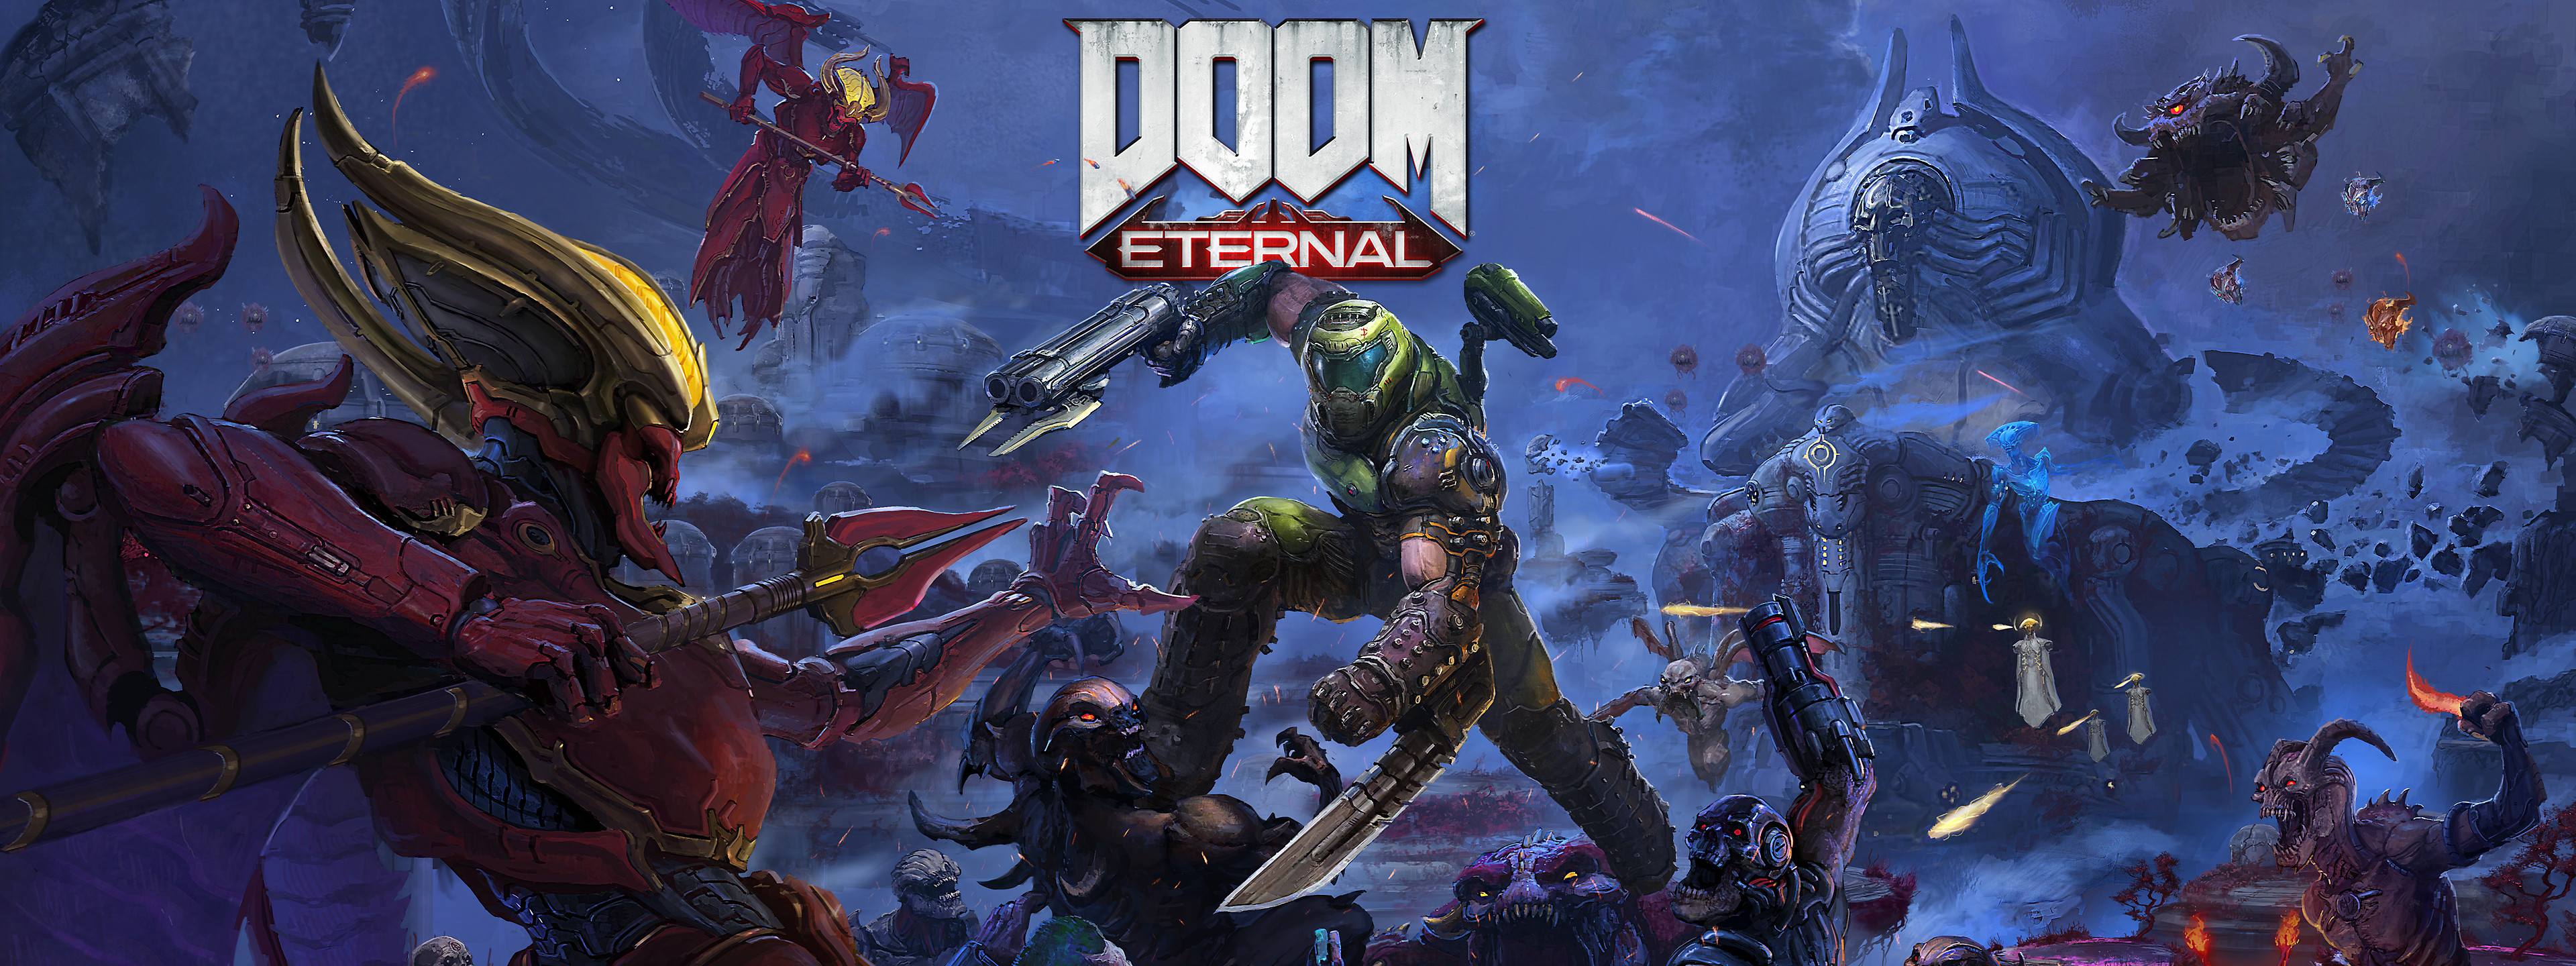 Doom Eternal Buy Now